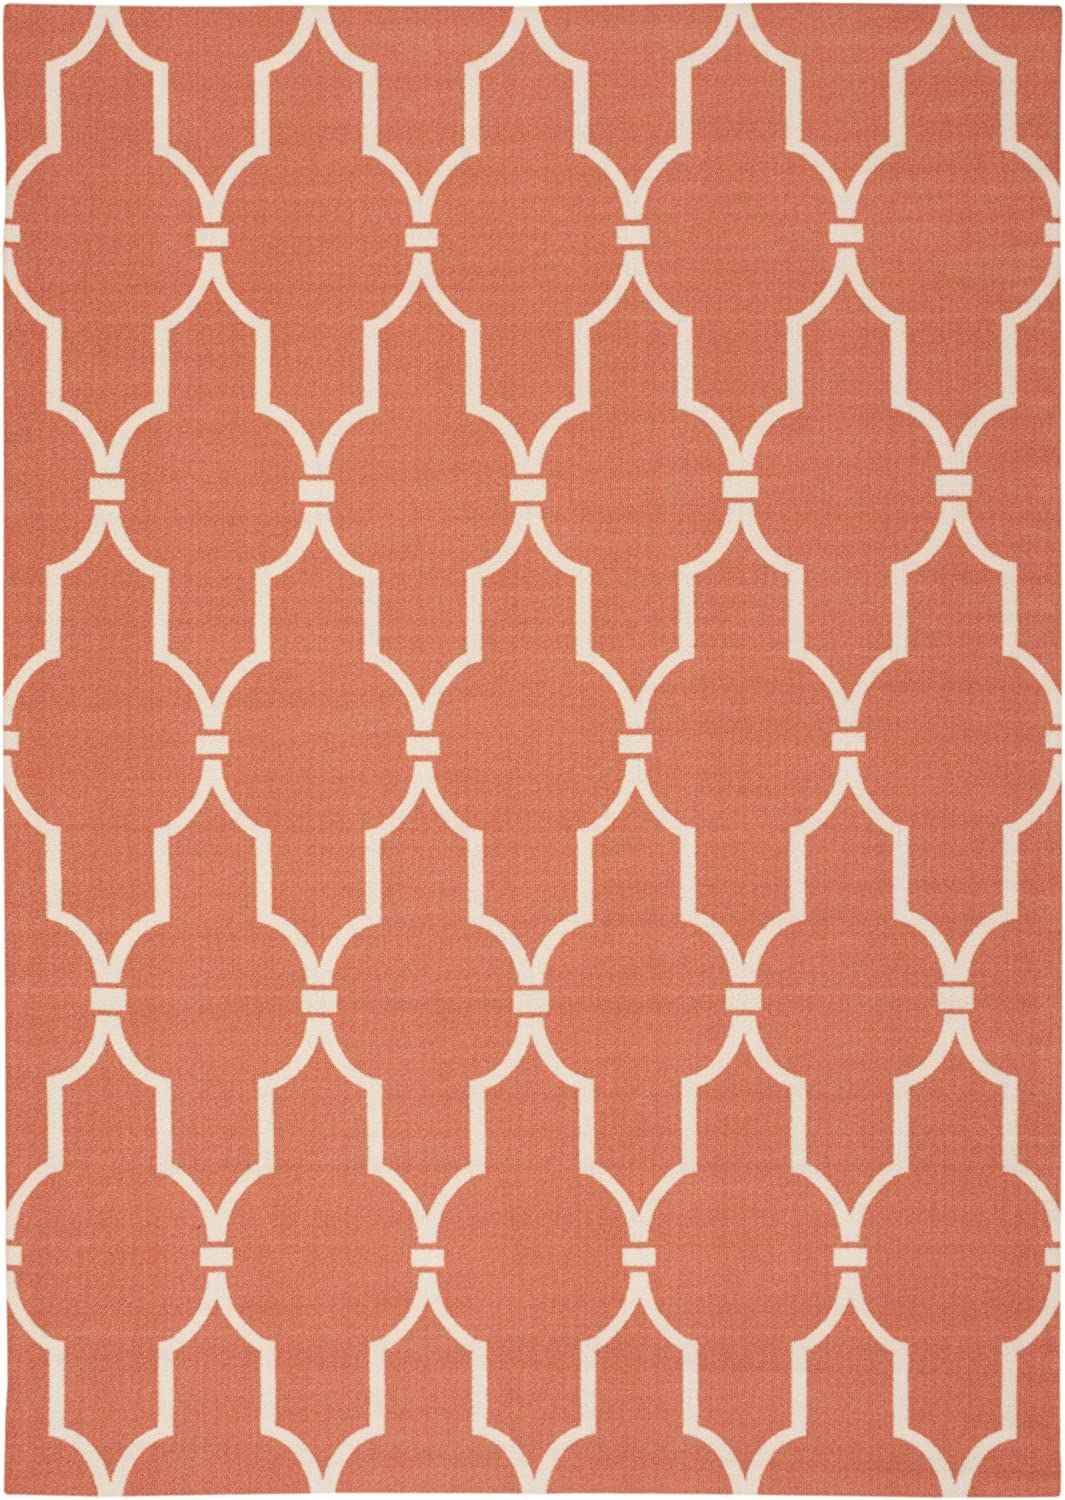 Nourison Home & Garden Orange Rectangle Area Rug, 5-Feet 3-Inches by 7-Feet 5-Inches (5'3